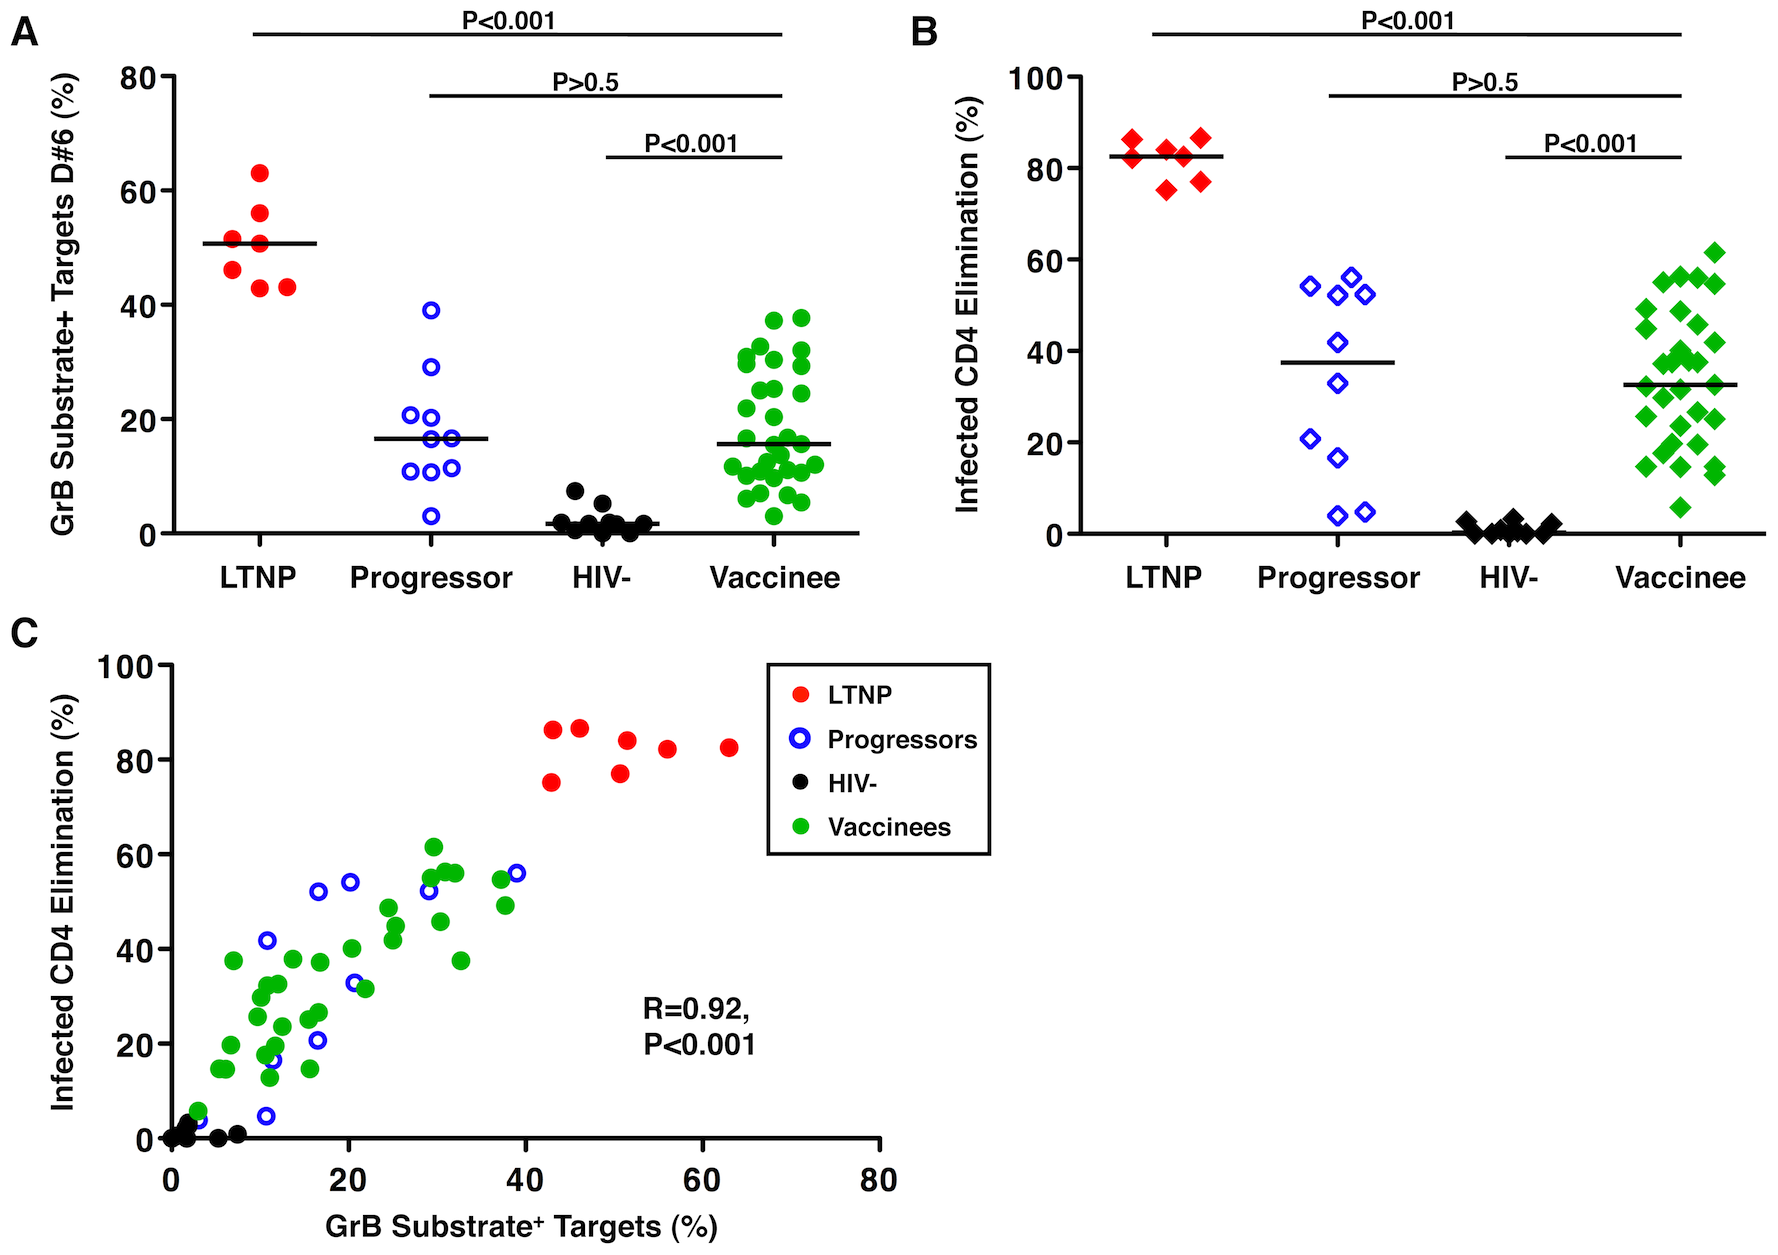 HIV-specific CD8<sup>+</sup> T-cell cytotoxic responses induced by an Ad5/HIV vaccine were similar to those of progressors.